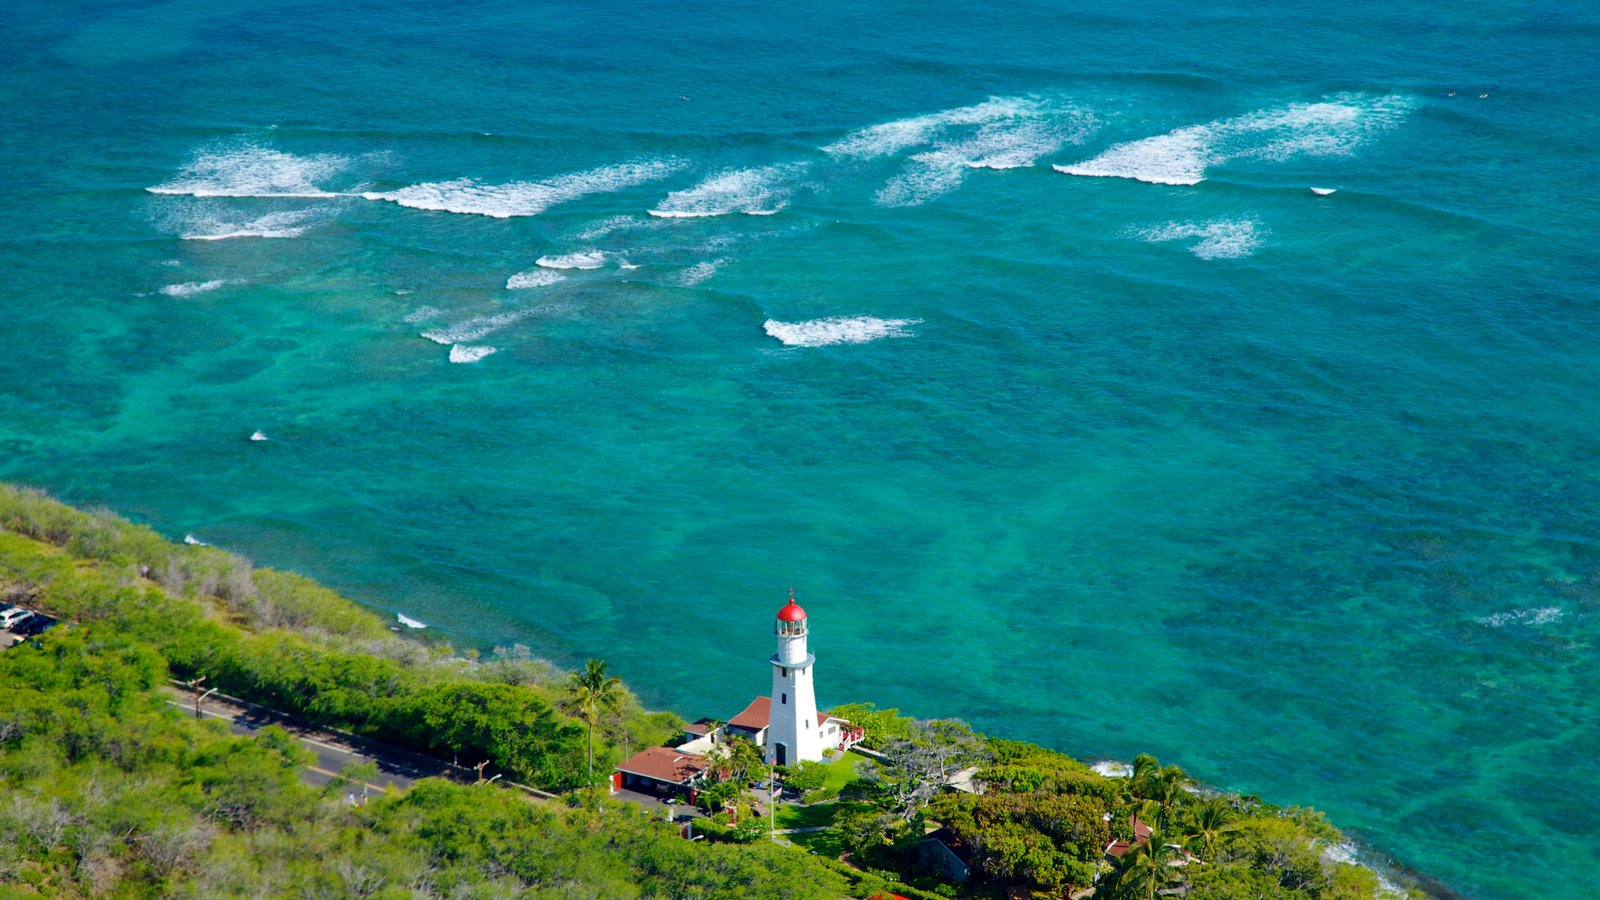 Diamond Head featuring tropical scenes, landscape views and a lighthouse